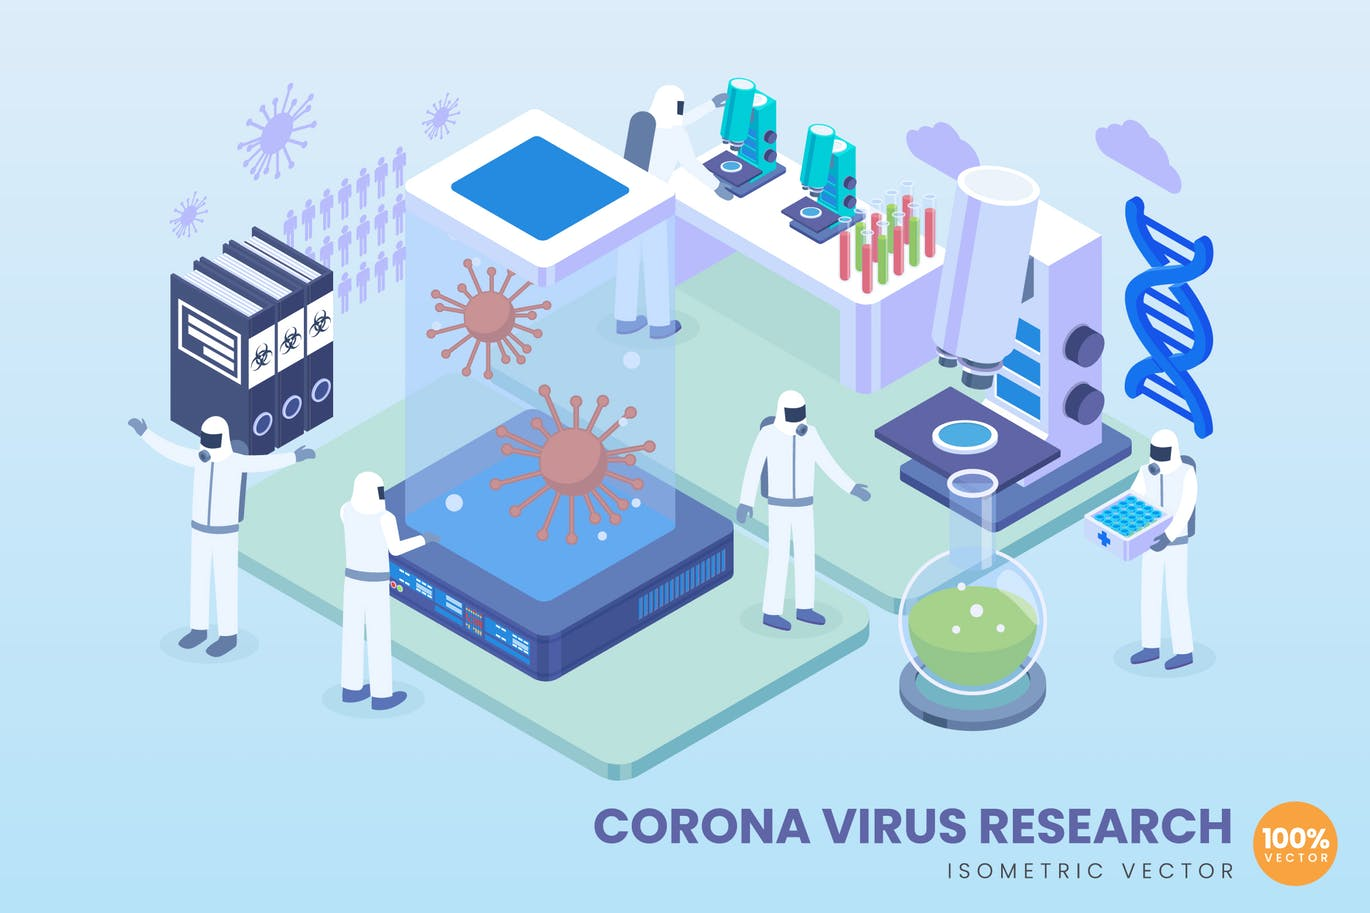 Isometric Corona Virus Research Vector Concept